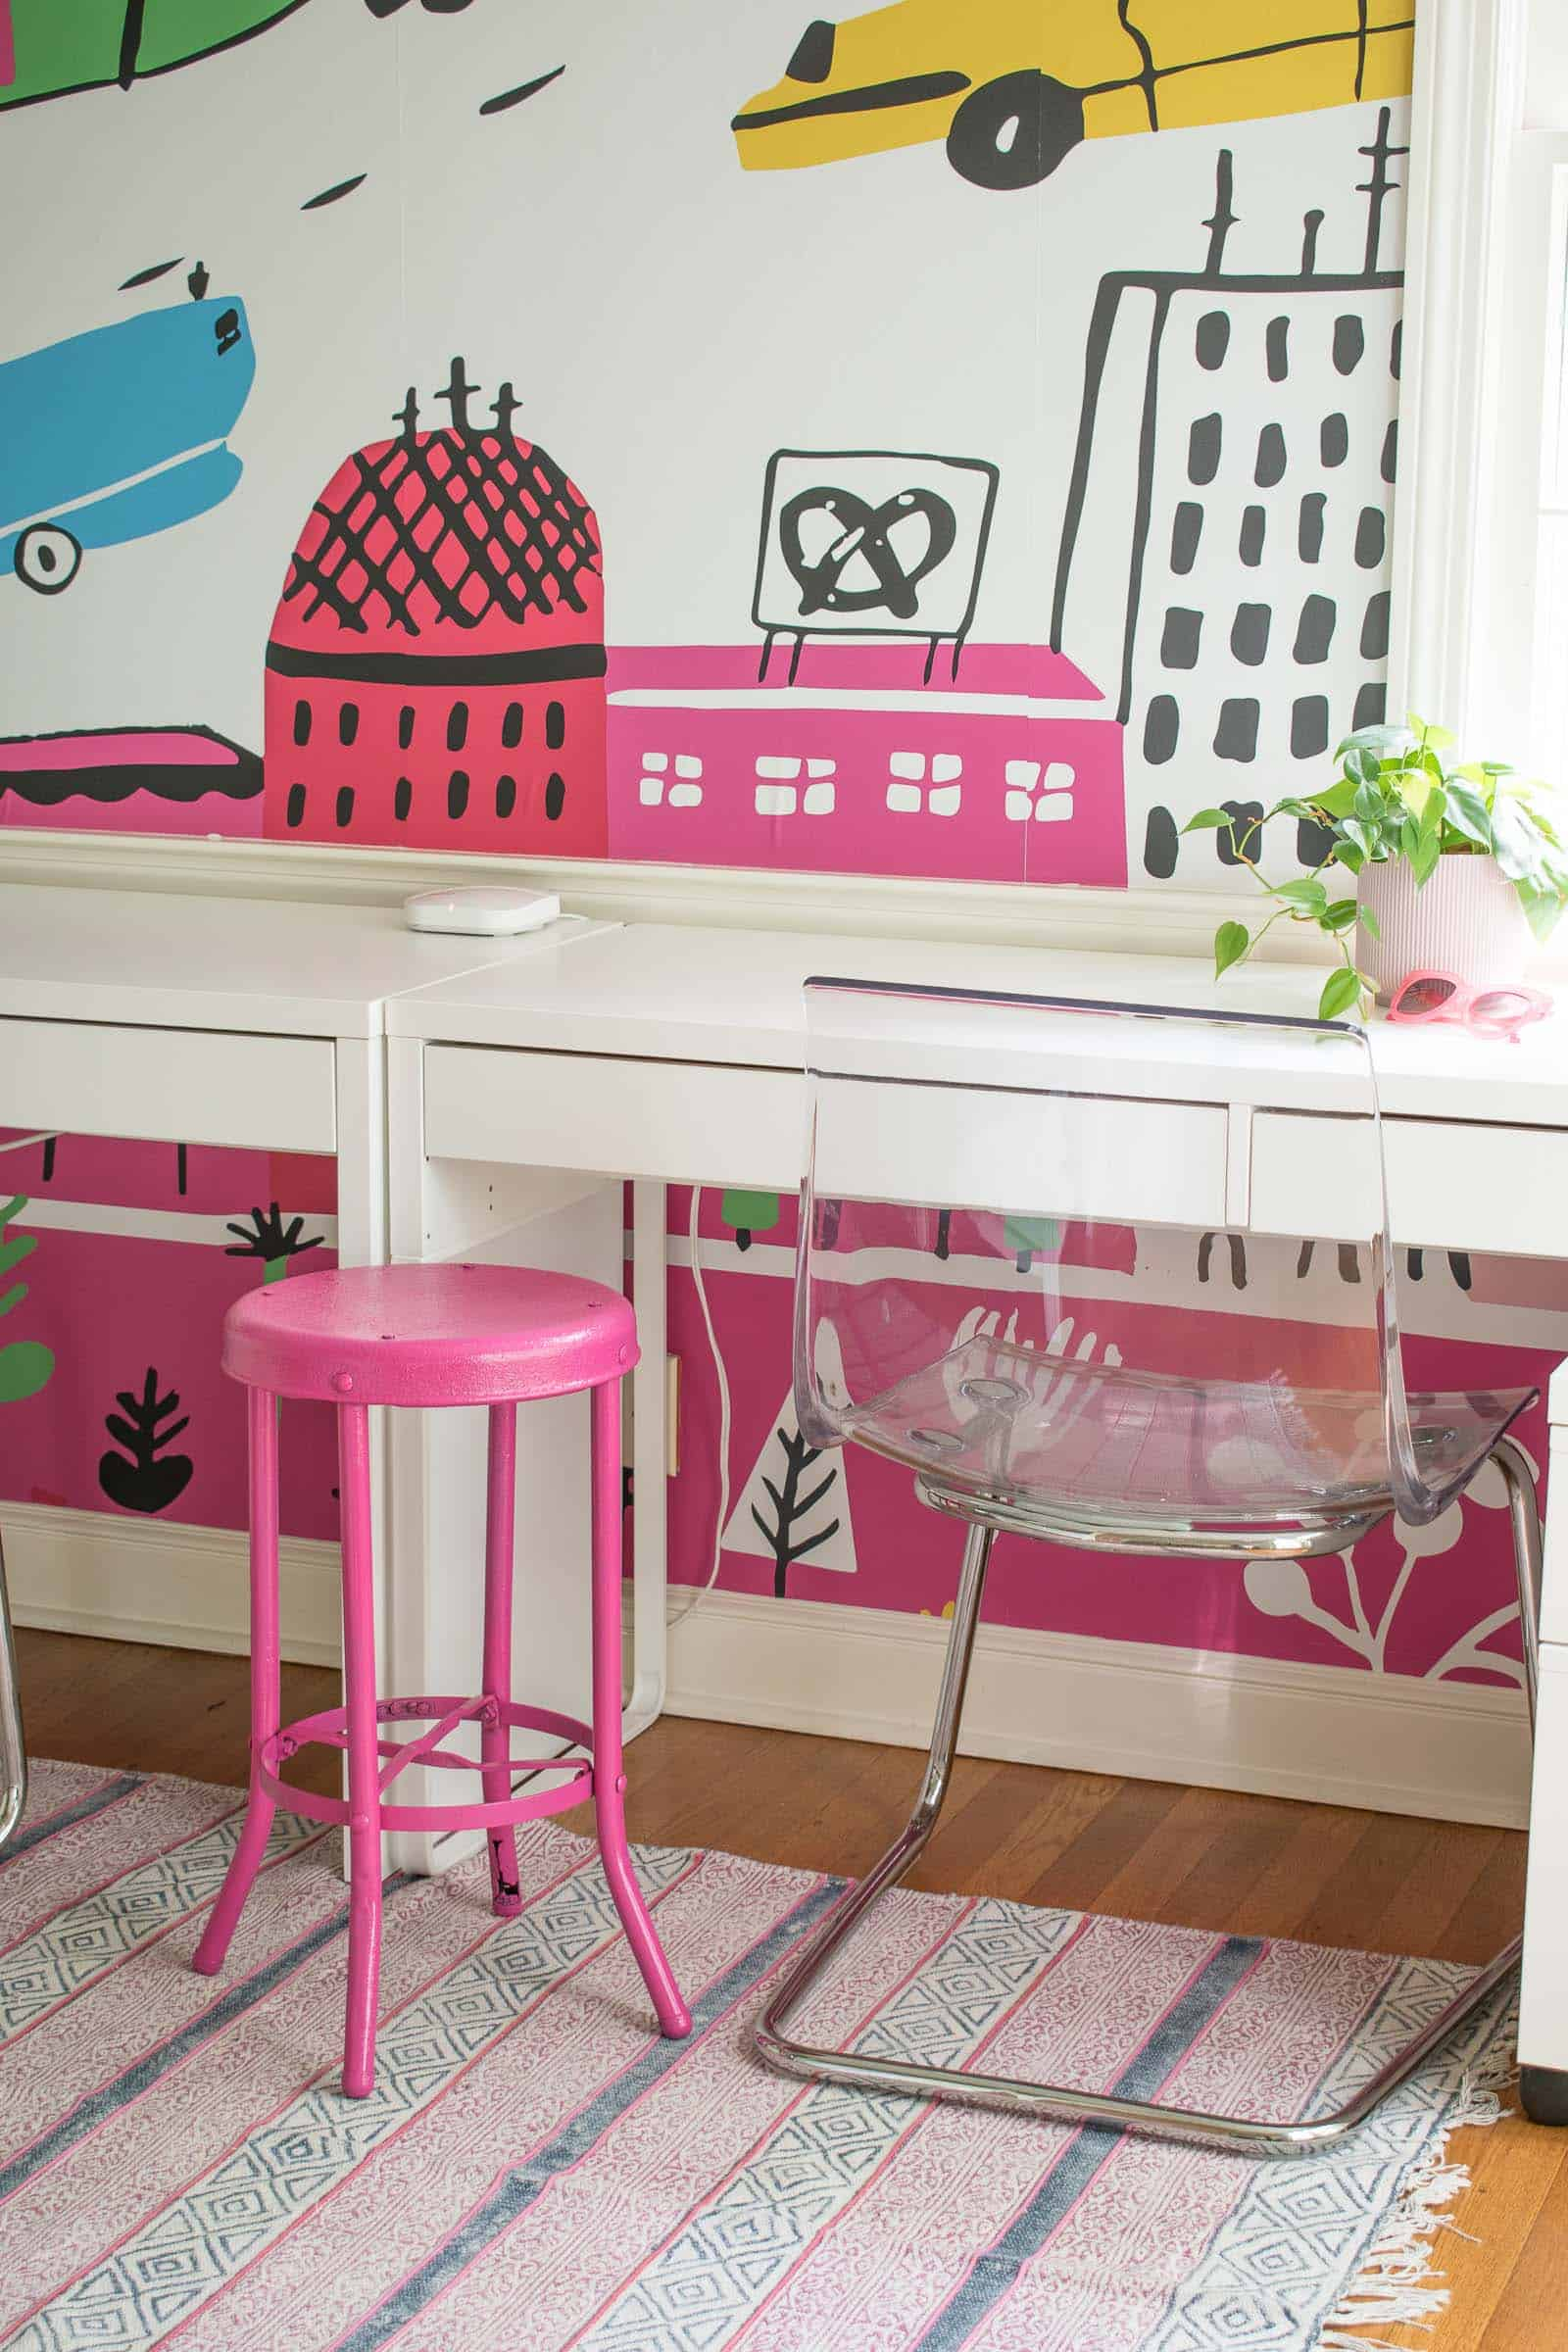 spray painted pink stool